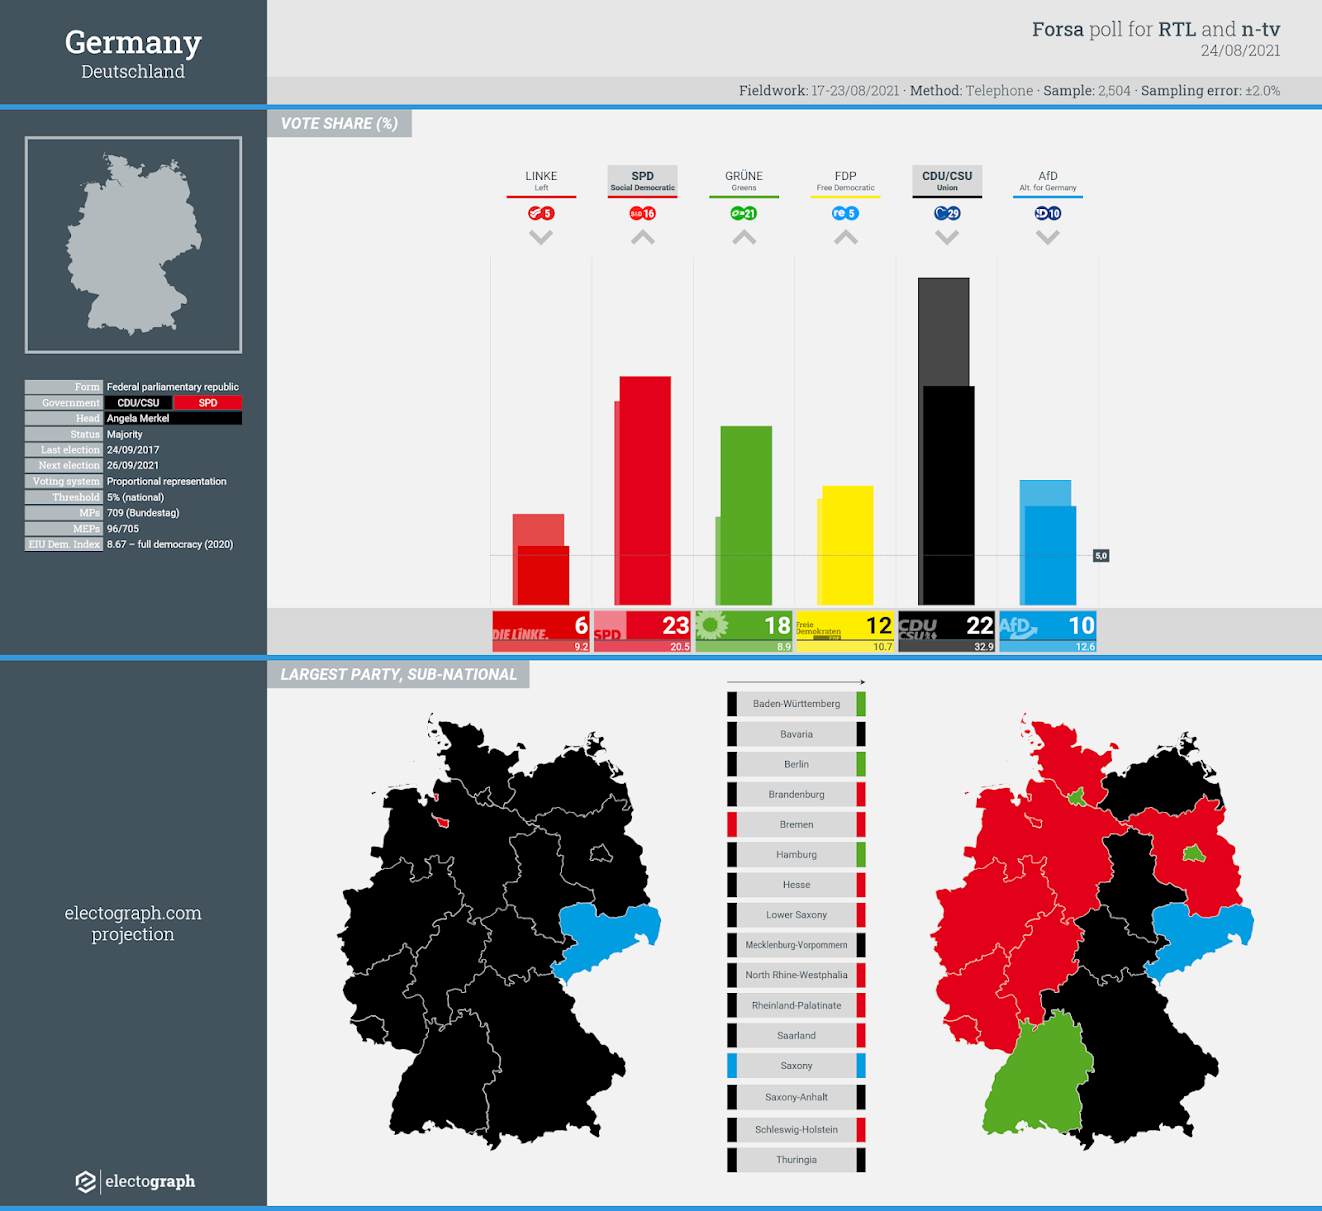 GERMANY: Forsa poll chart for RTL and n-tv, 24 August 2021